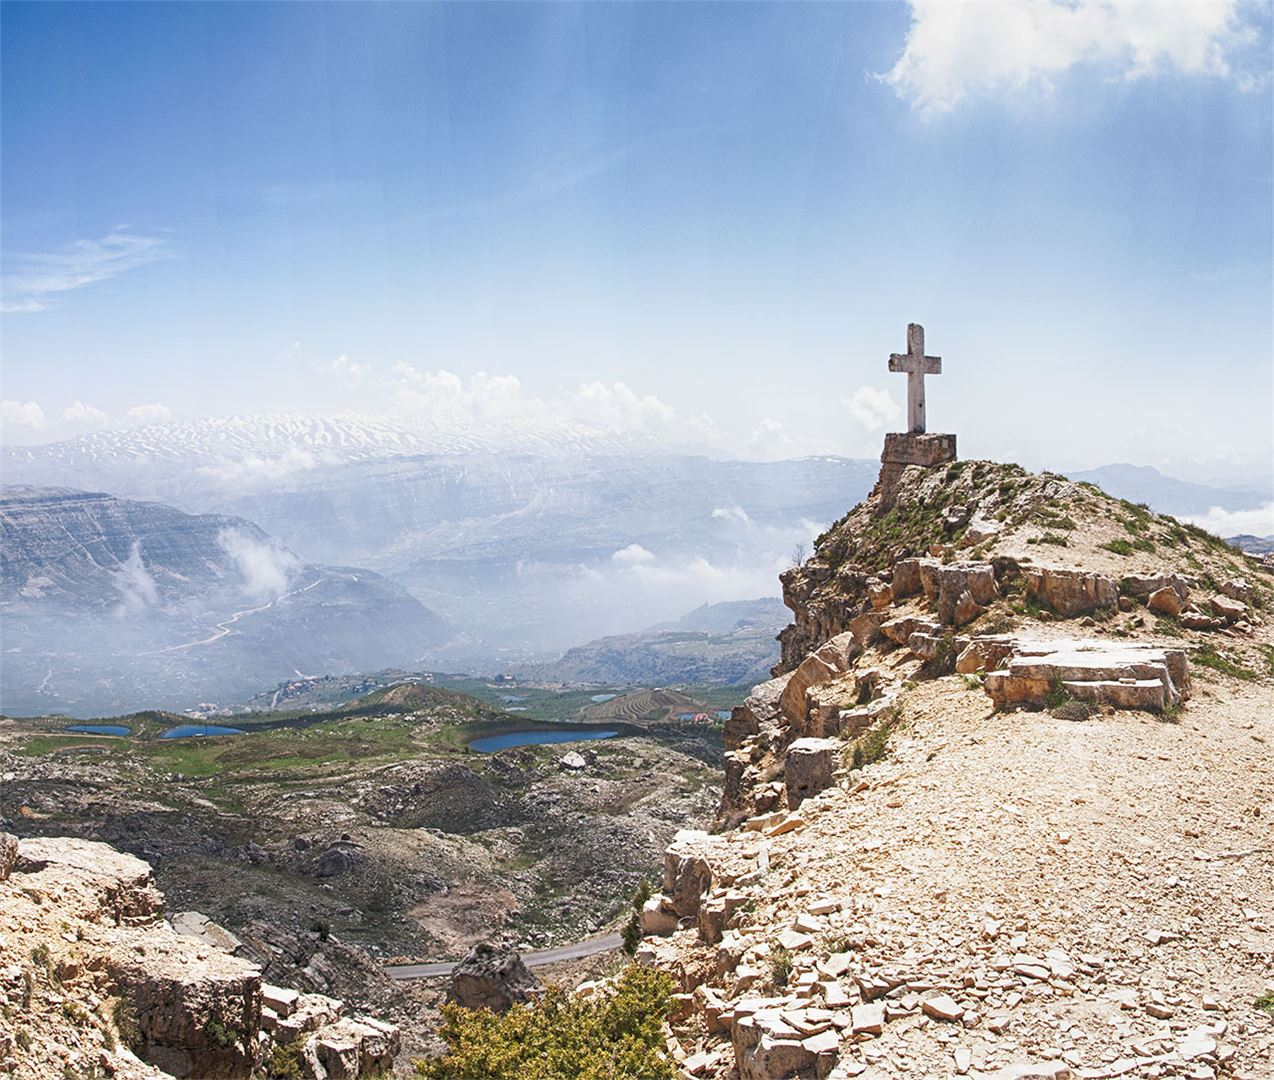 360 View Taken from the Top of the Mountain Near the Cross (Saydet El Qarn, Laklouk - Akoura)